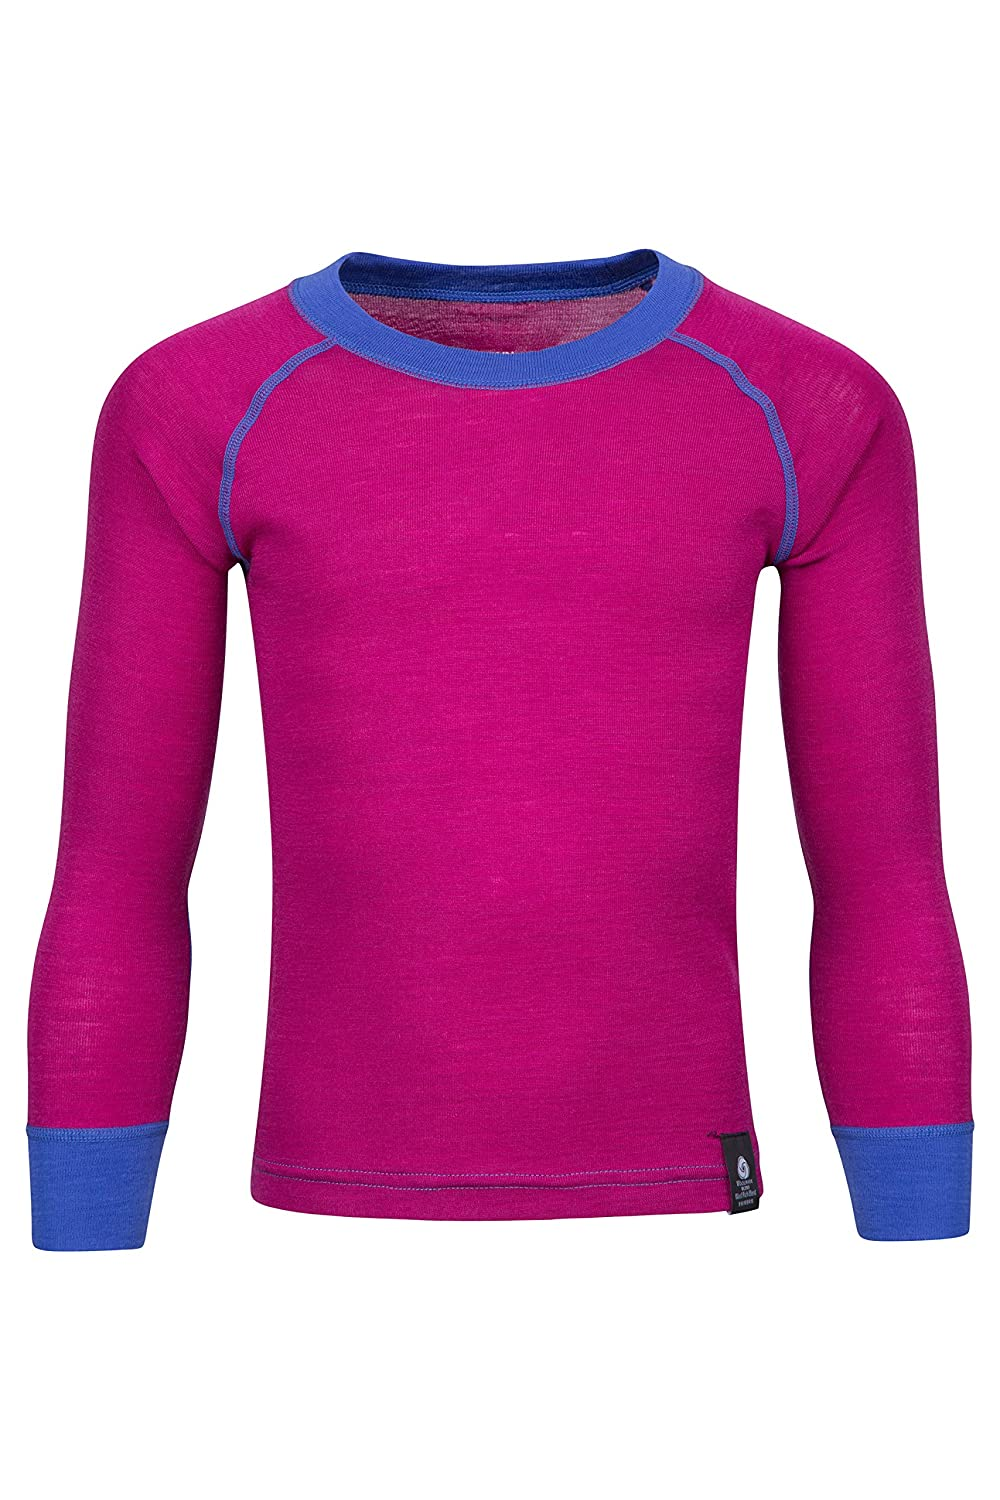 Mountain Warehouse Merino Kids Round Neck Thermal Baselayer Top – Full Sleeves, Light, Breathable, Quick Dry Childrens T-Shirt - for Camping in Cold Weather